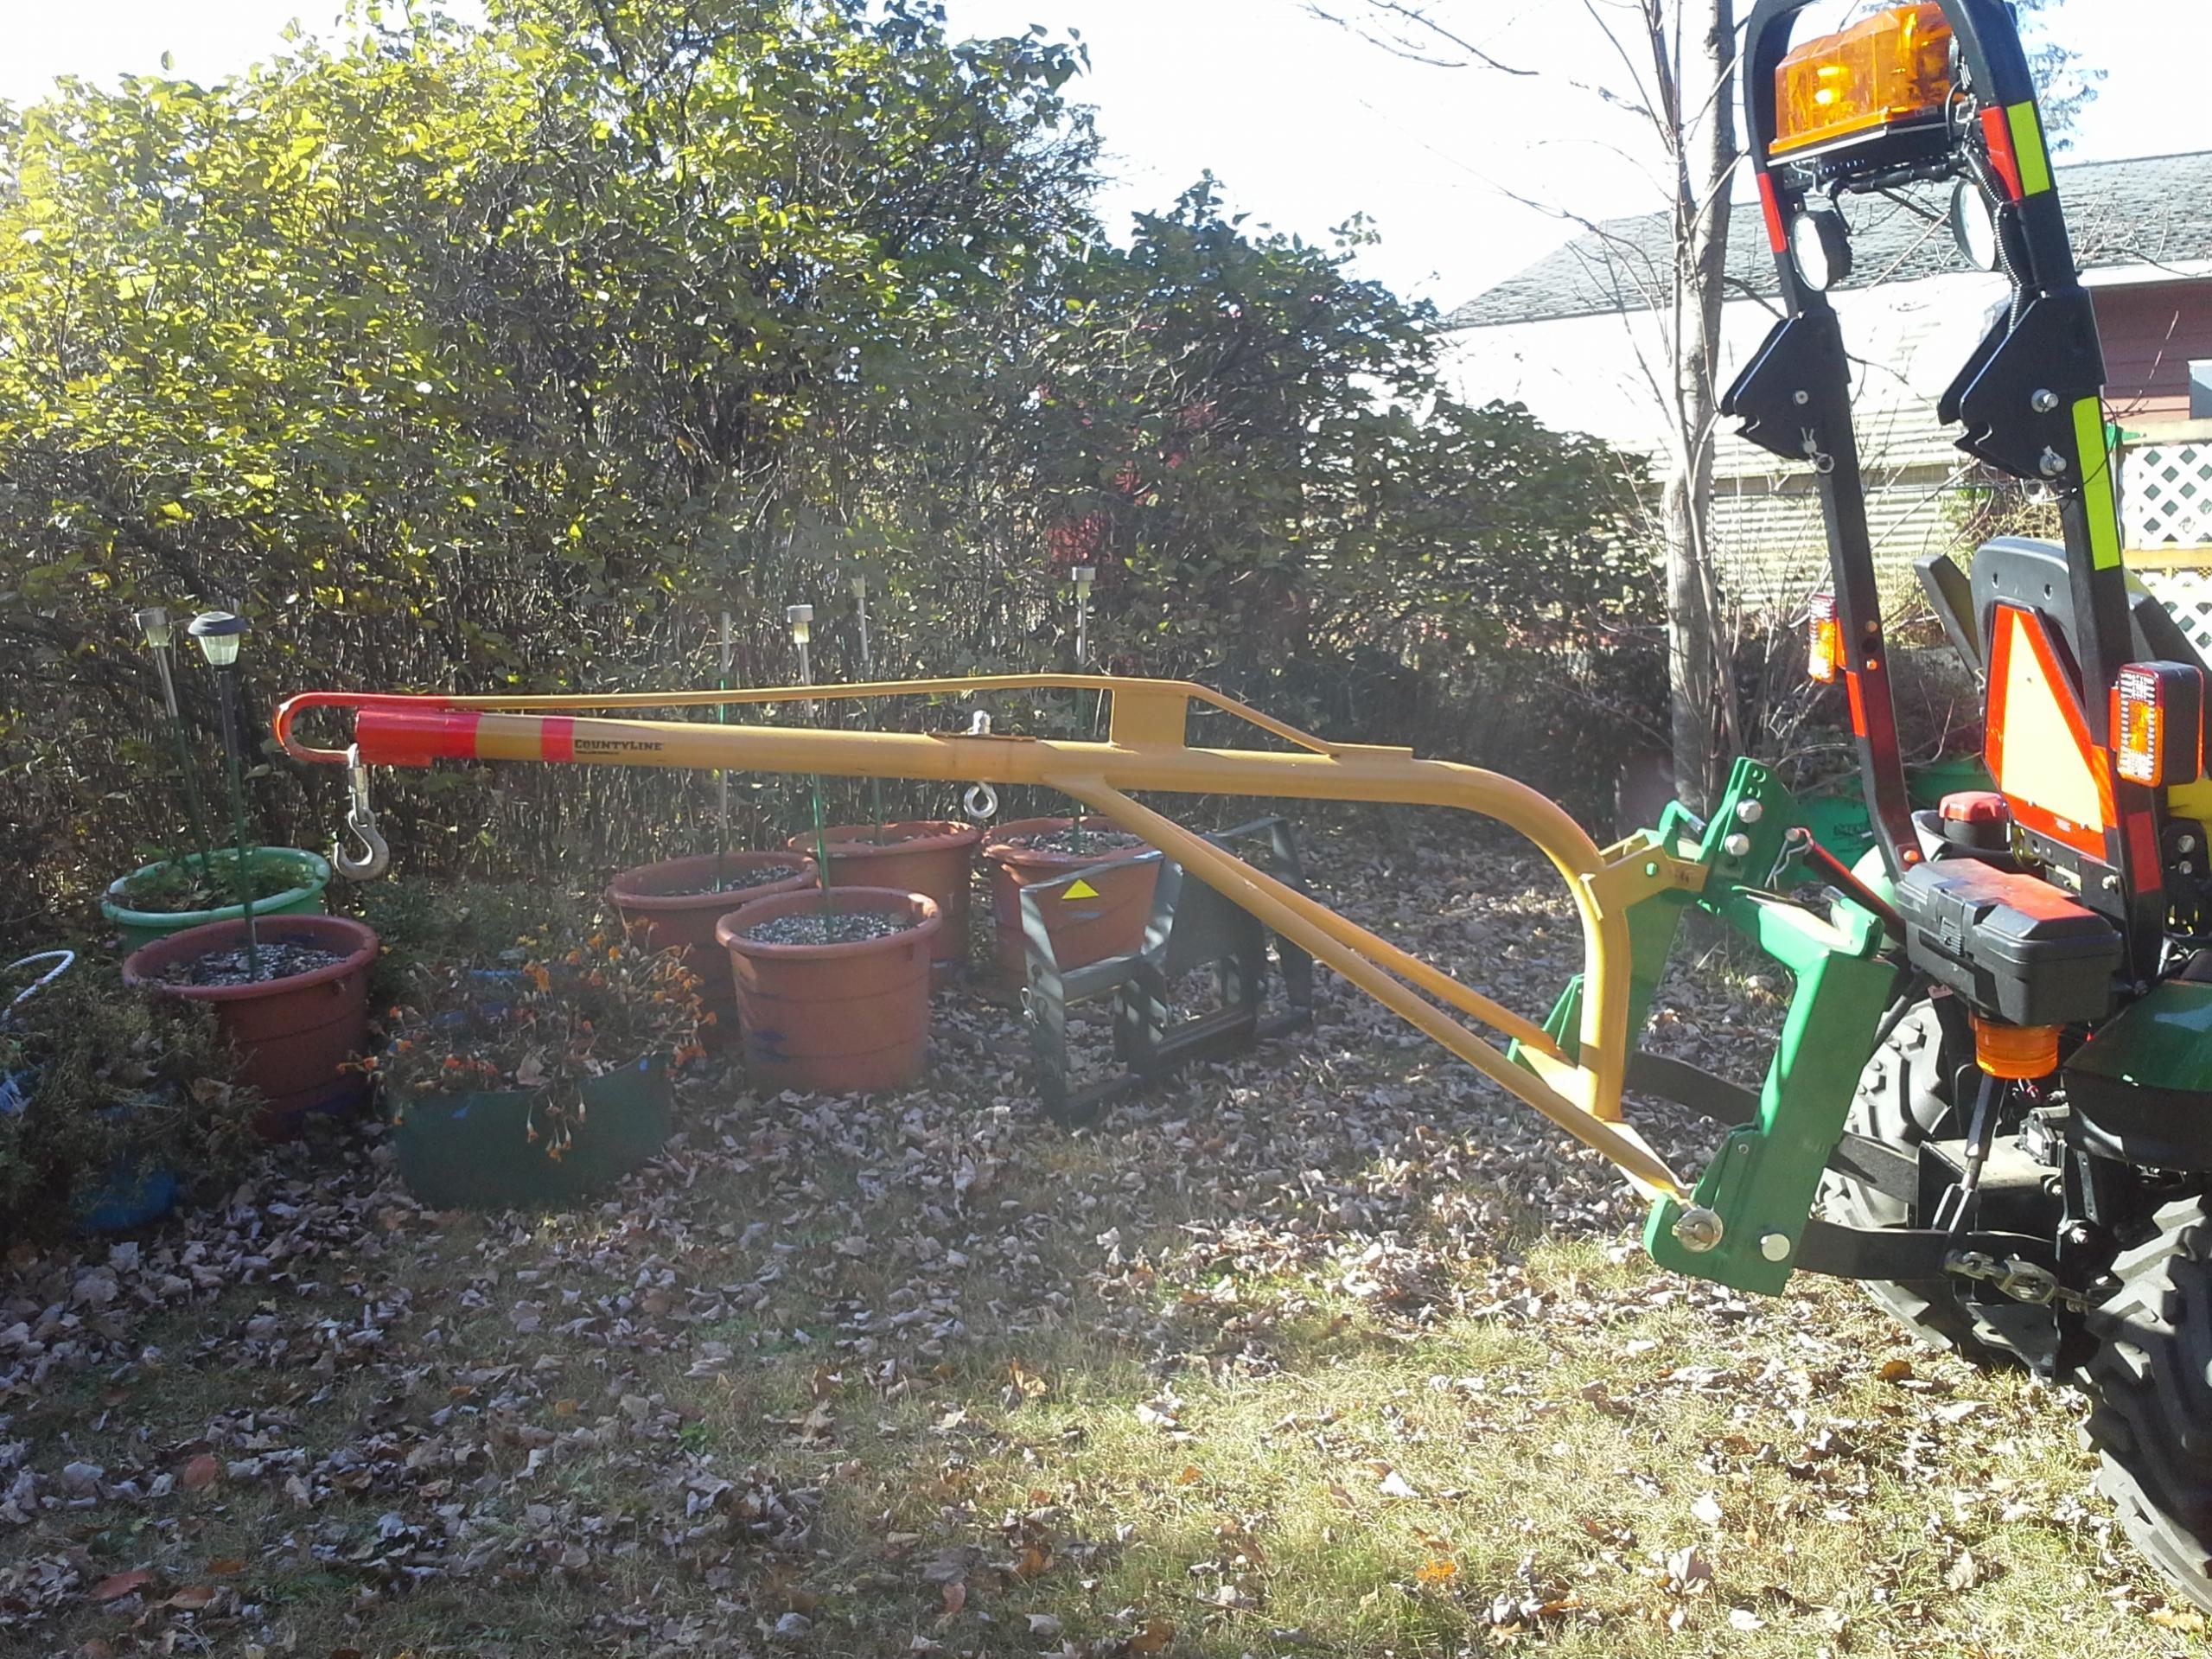 Tractor Boom Pole Lift : Point lift boom page